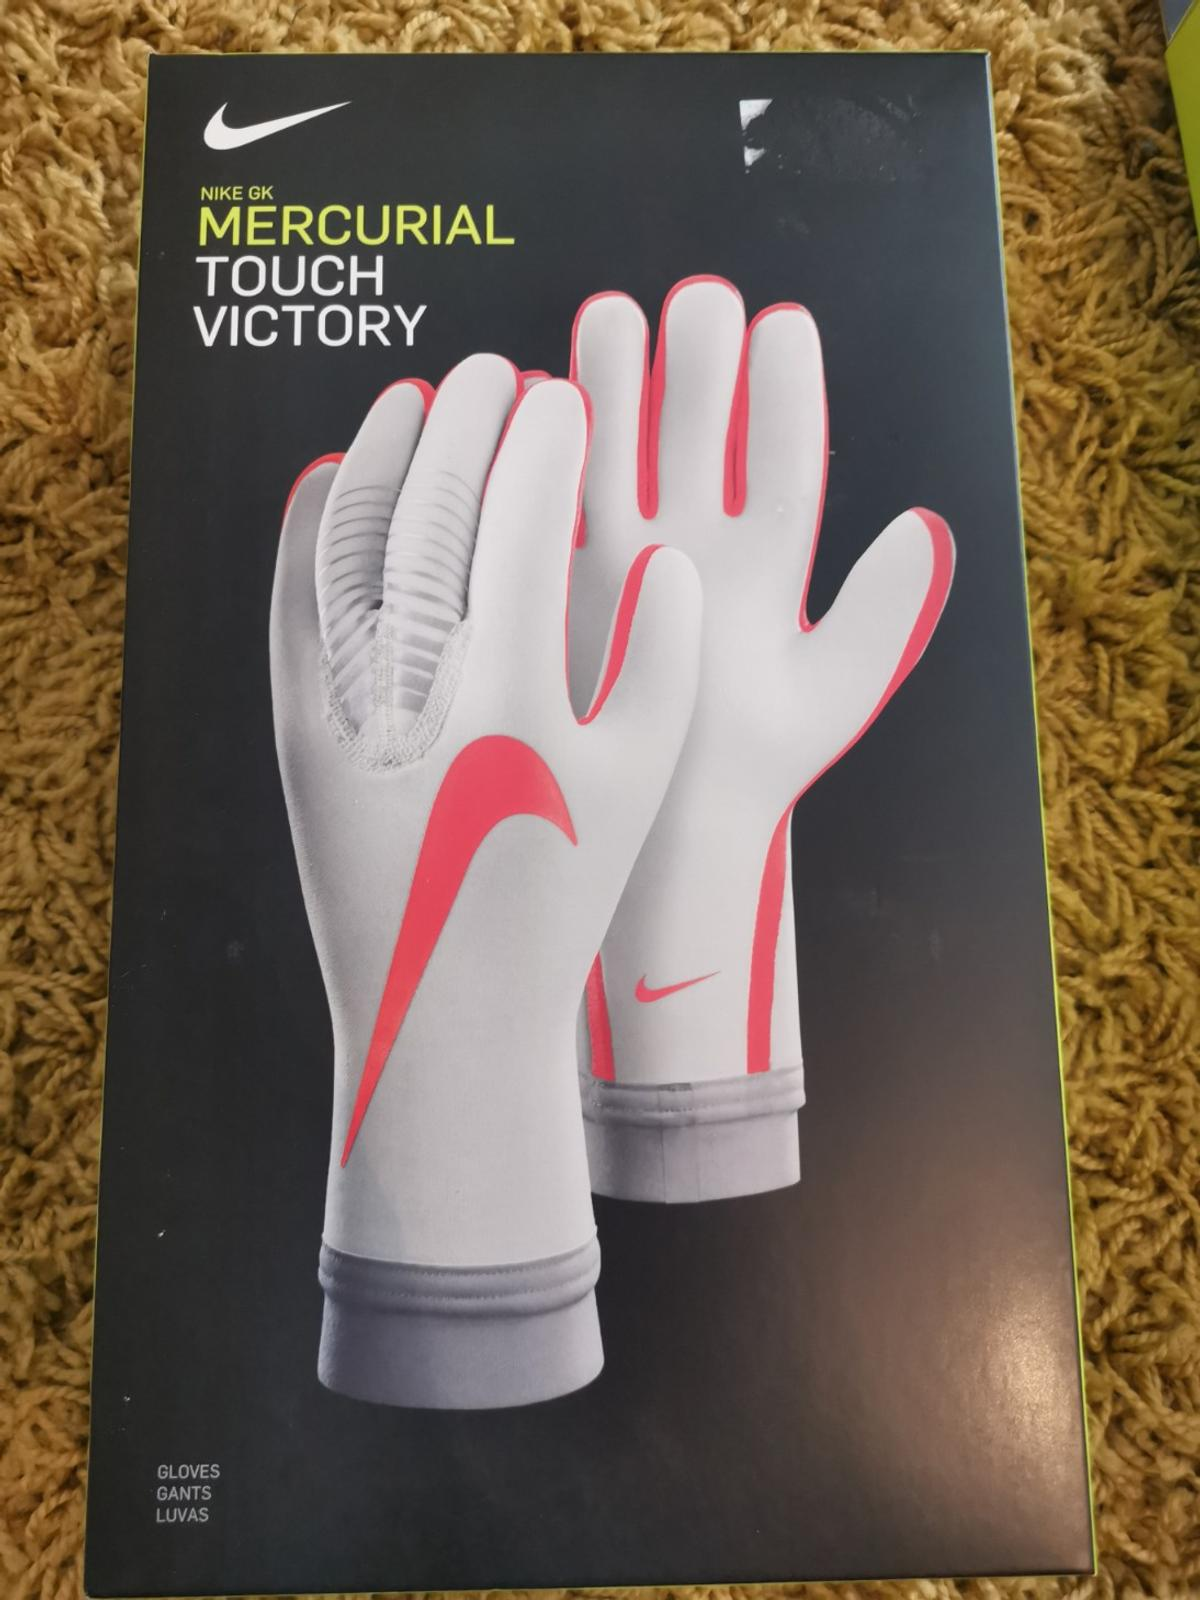 the best attitude 3b62a 261df Nike Mercurial Touch Victory Goalkeeper glove